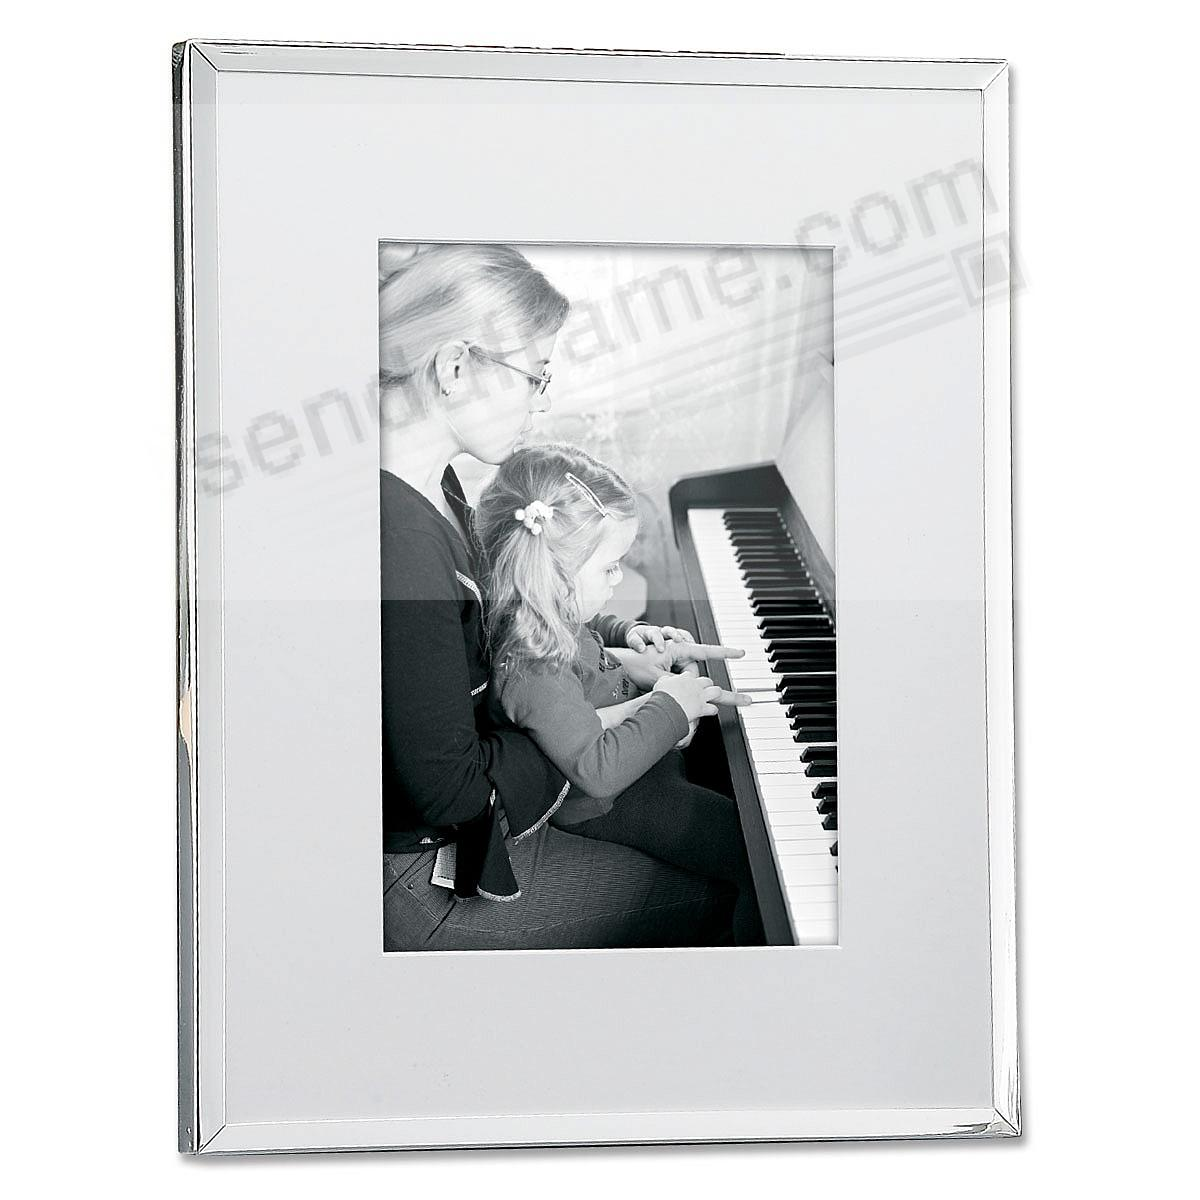 Polished Silverplate Matted 11x13/8x10 frame by Lawrence Frames®